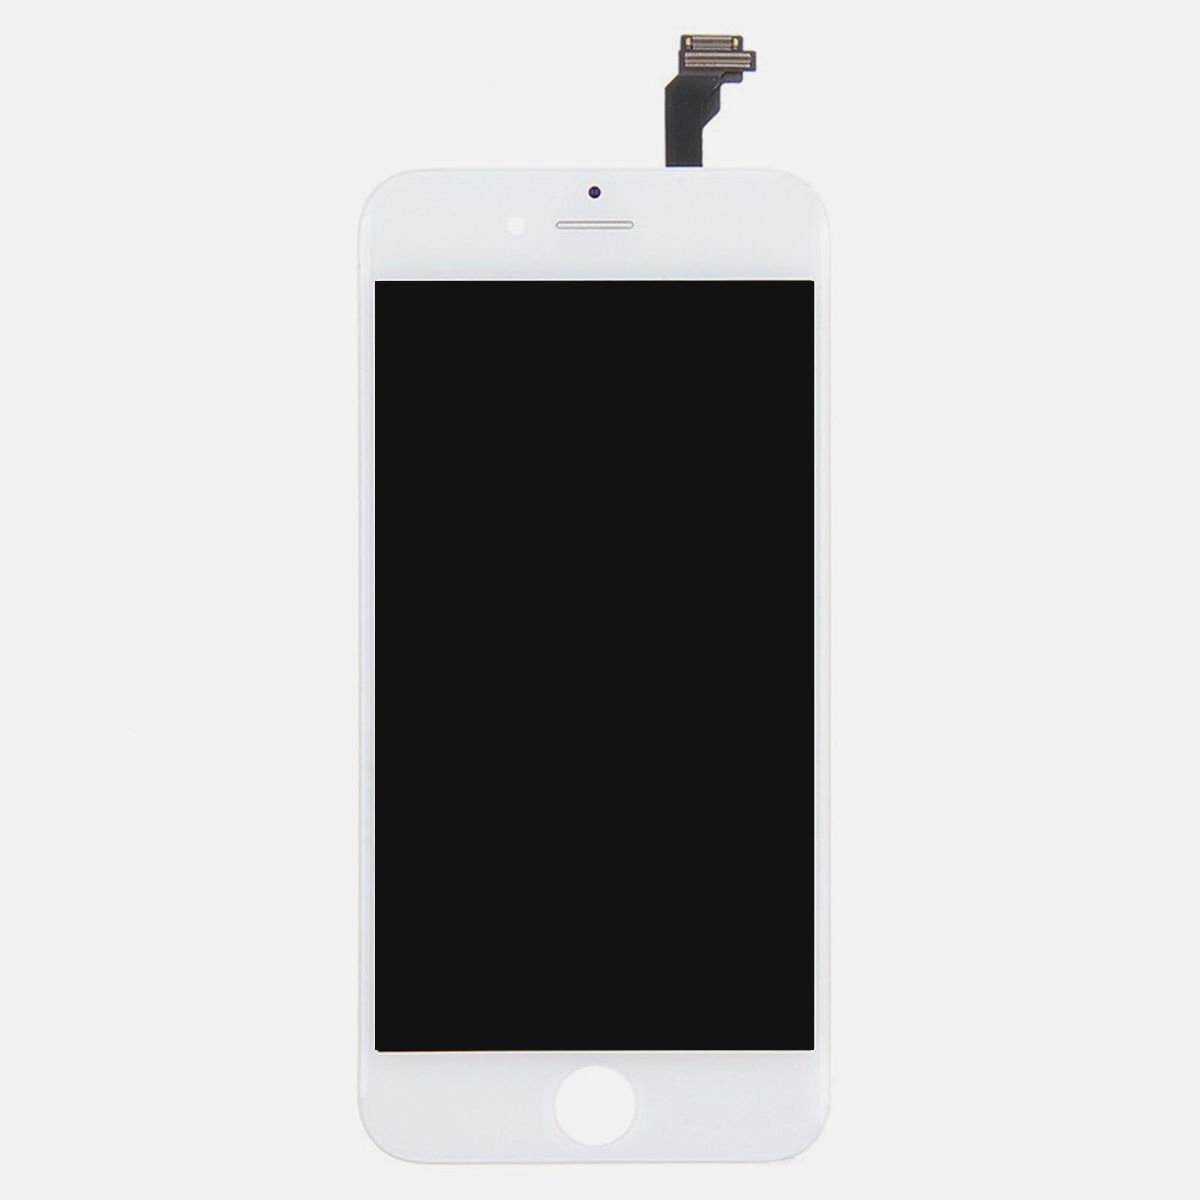 "BestZHL Retina LCD Touch Screen Digitizer Glass Replacement Full Assembly for iPhone 6 4.7"" Inch - White (Shipping From USA)"